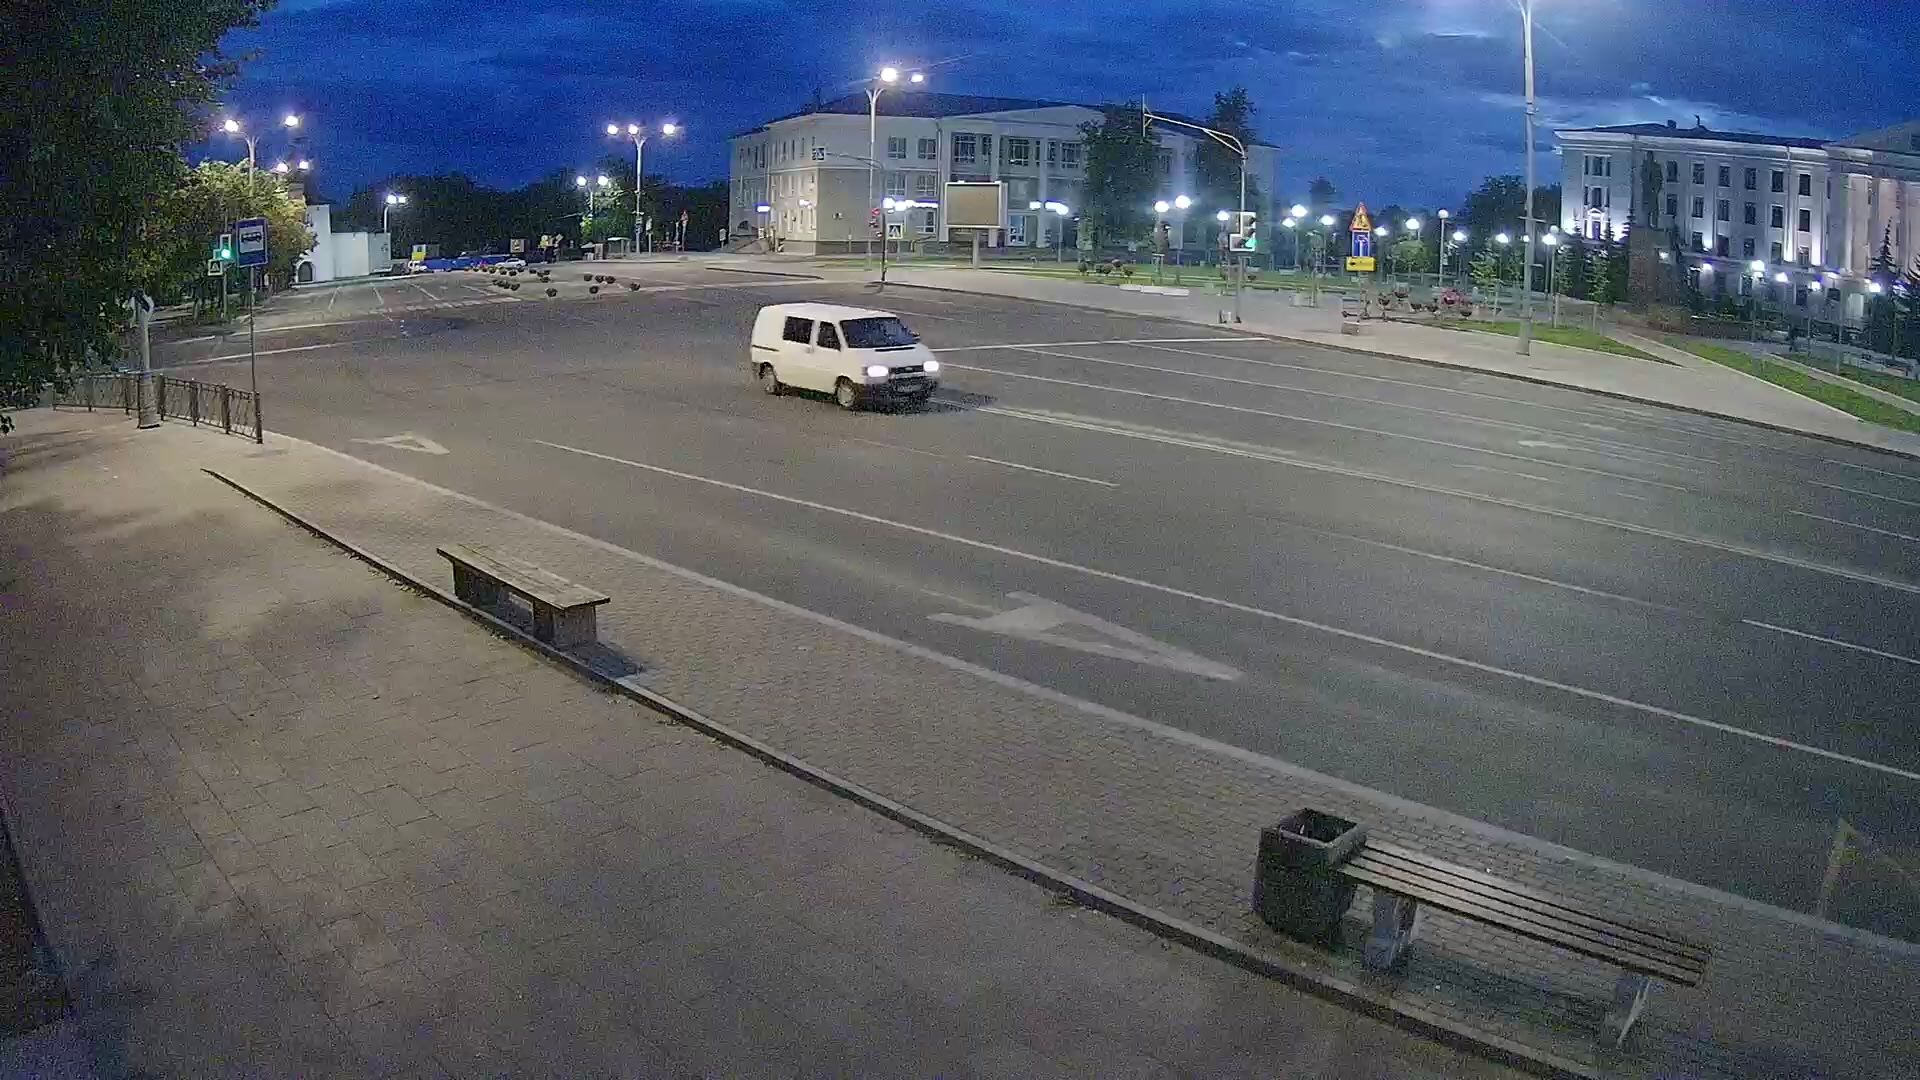 Webcam square Lenina, Pskov, Russia